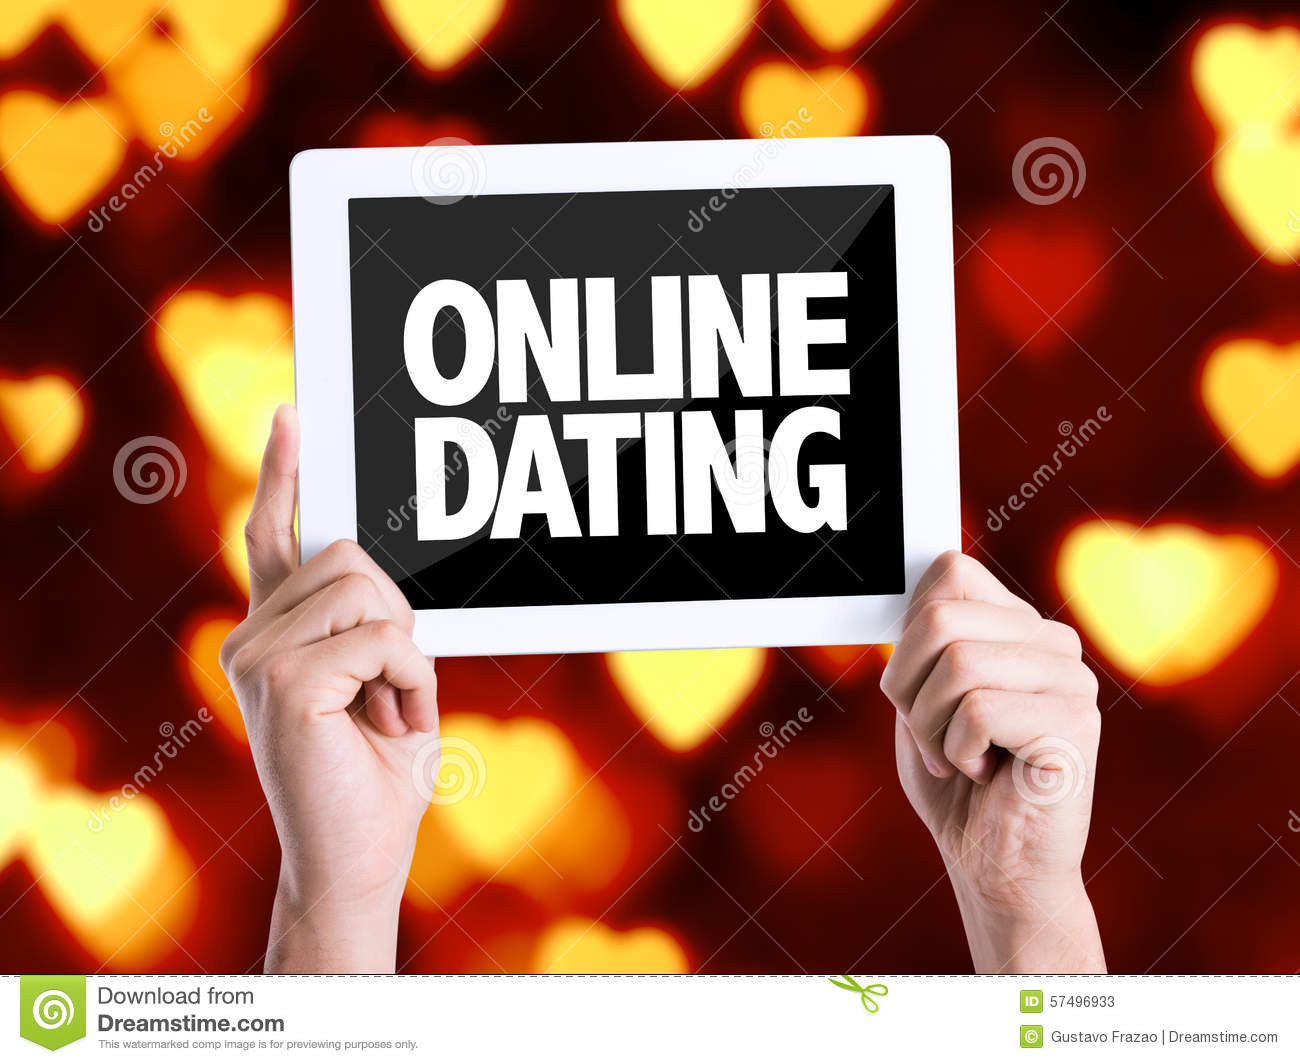 Text only dating